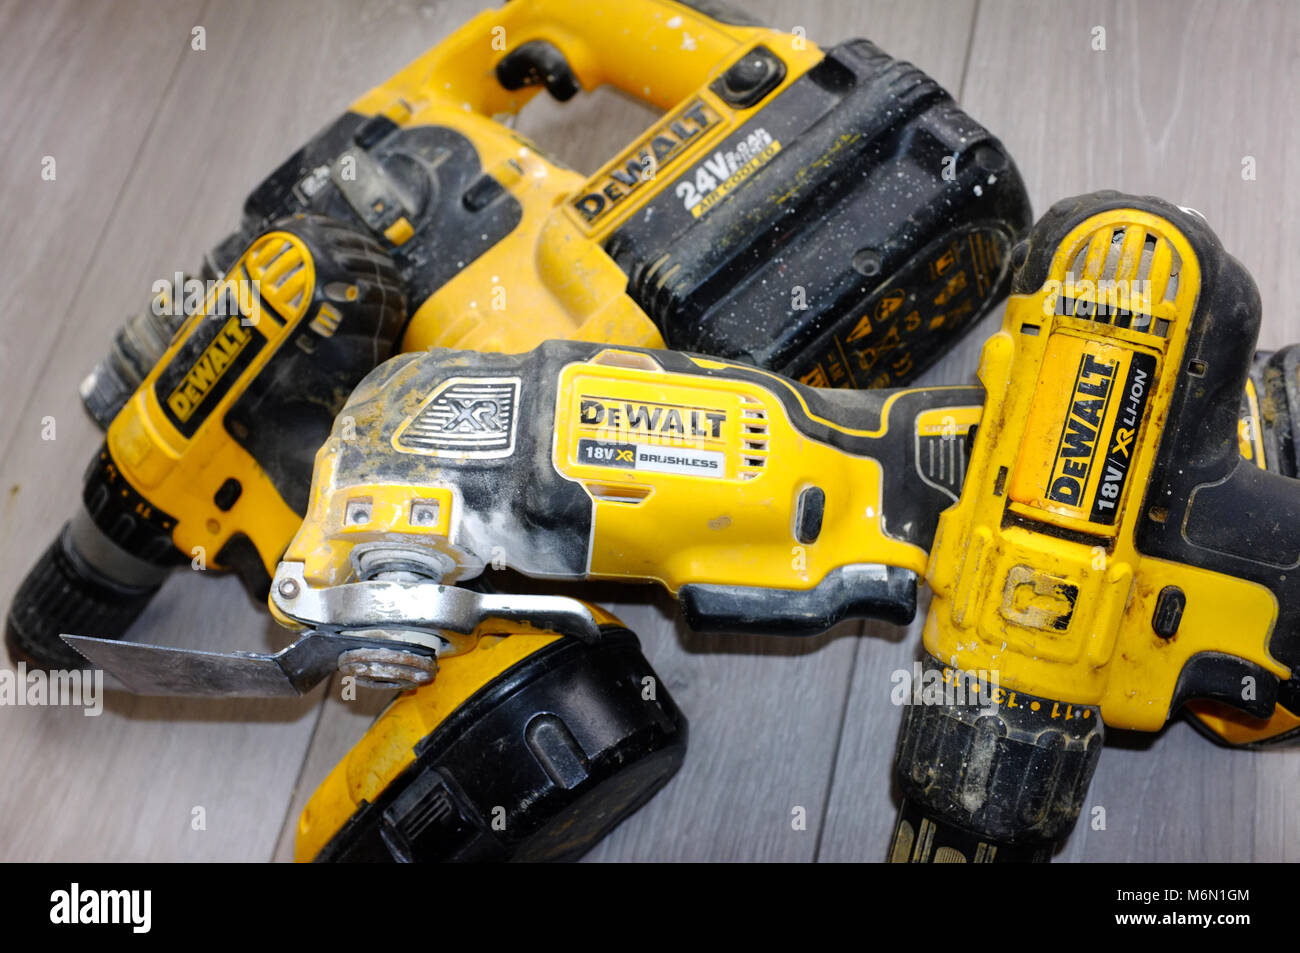 DeWalt yellow power tools as used by builders and trades people. - Stock Image